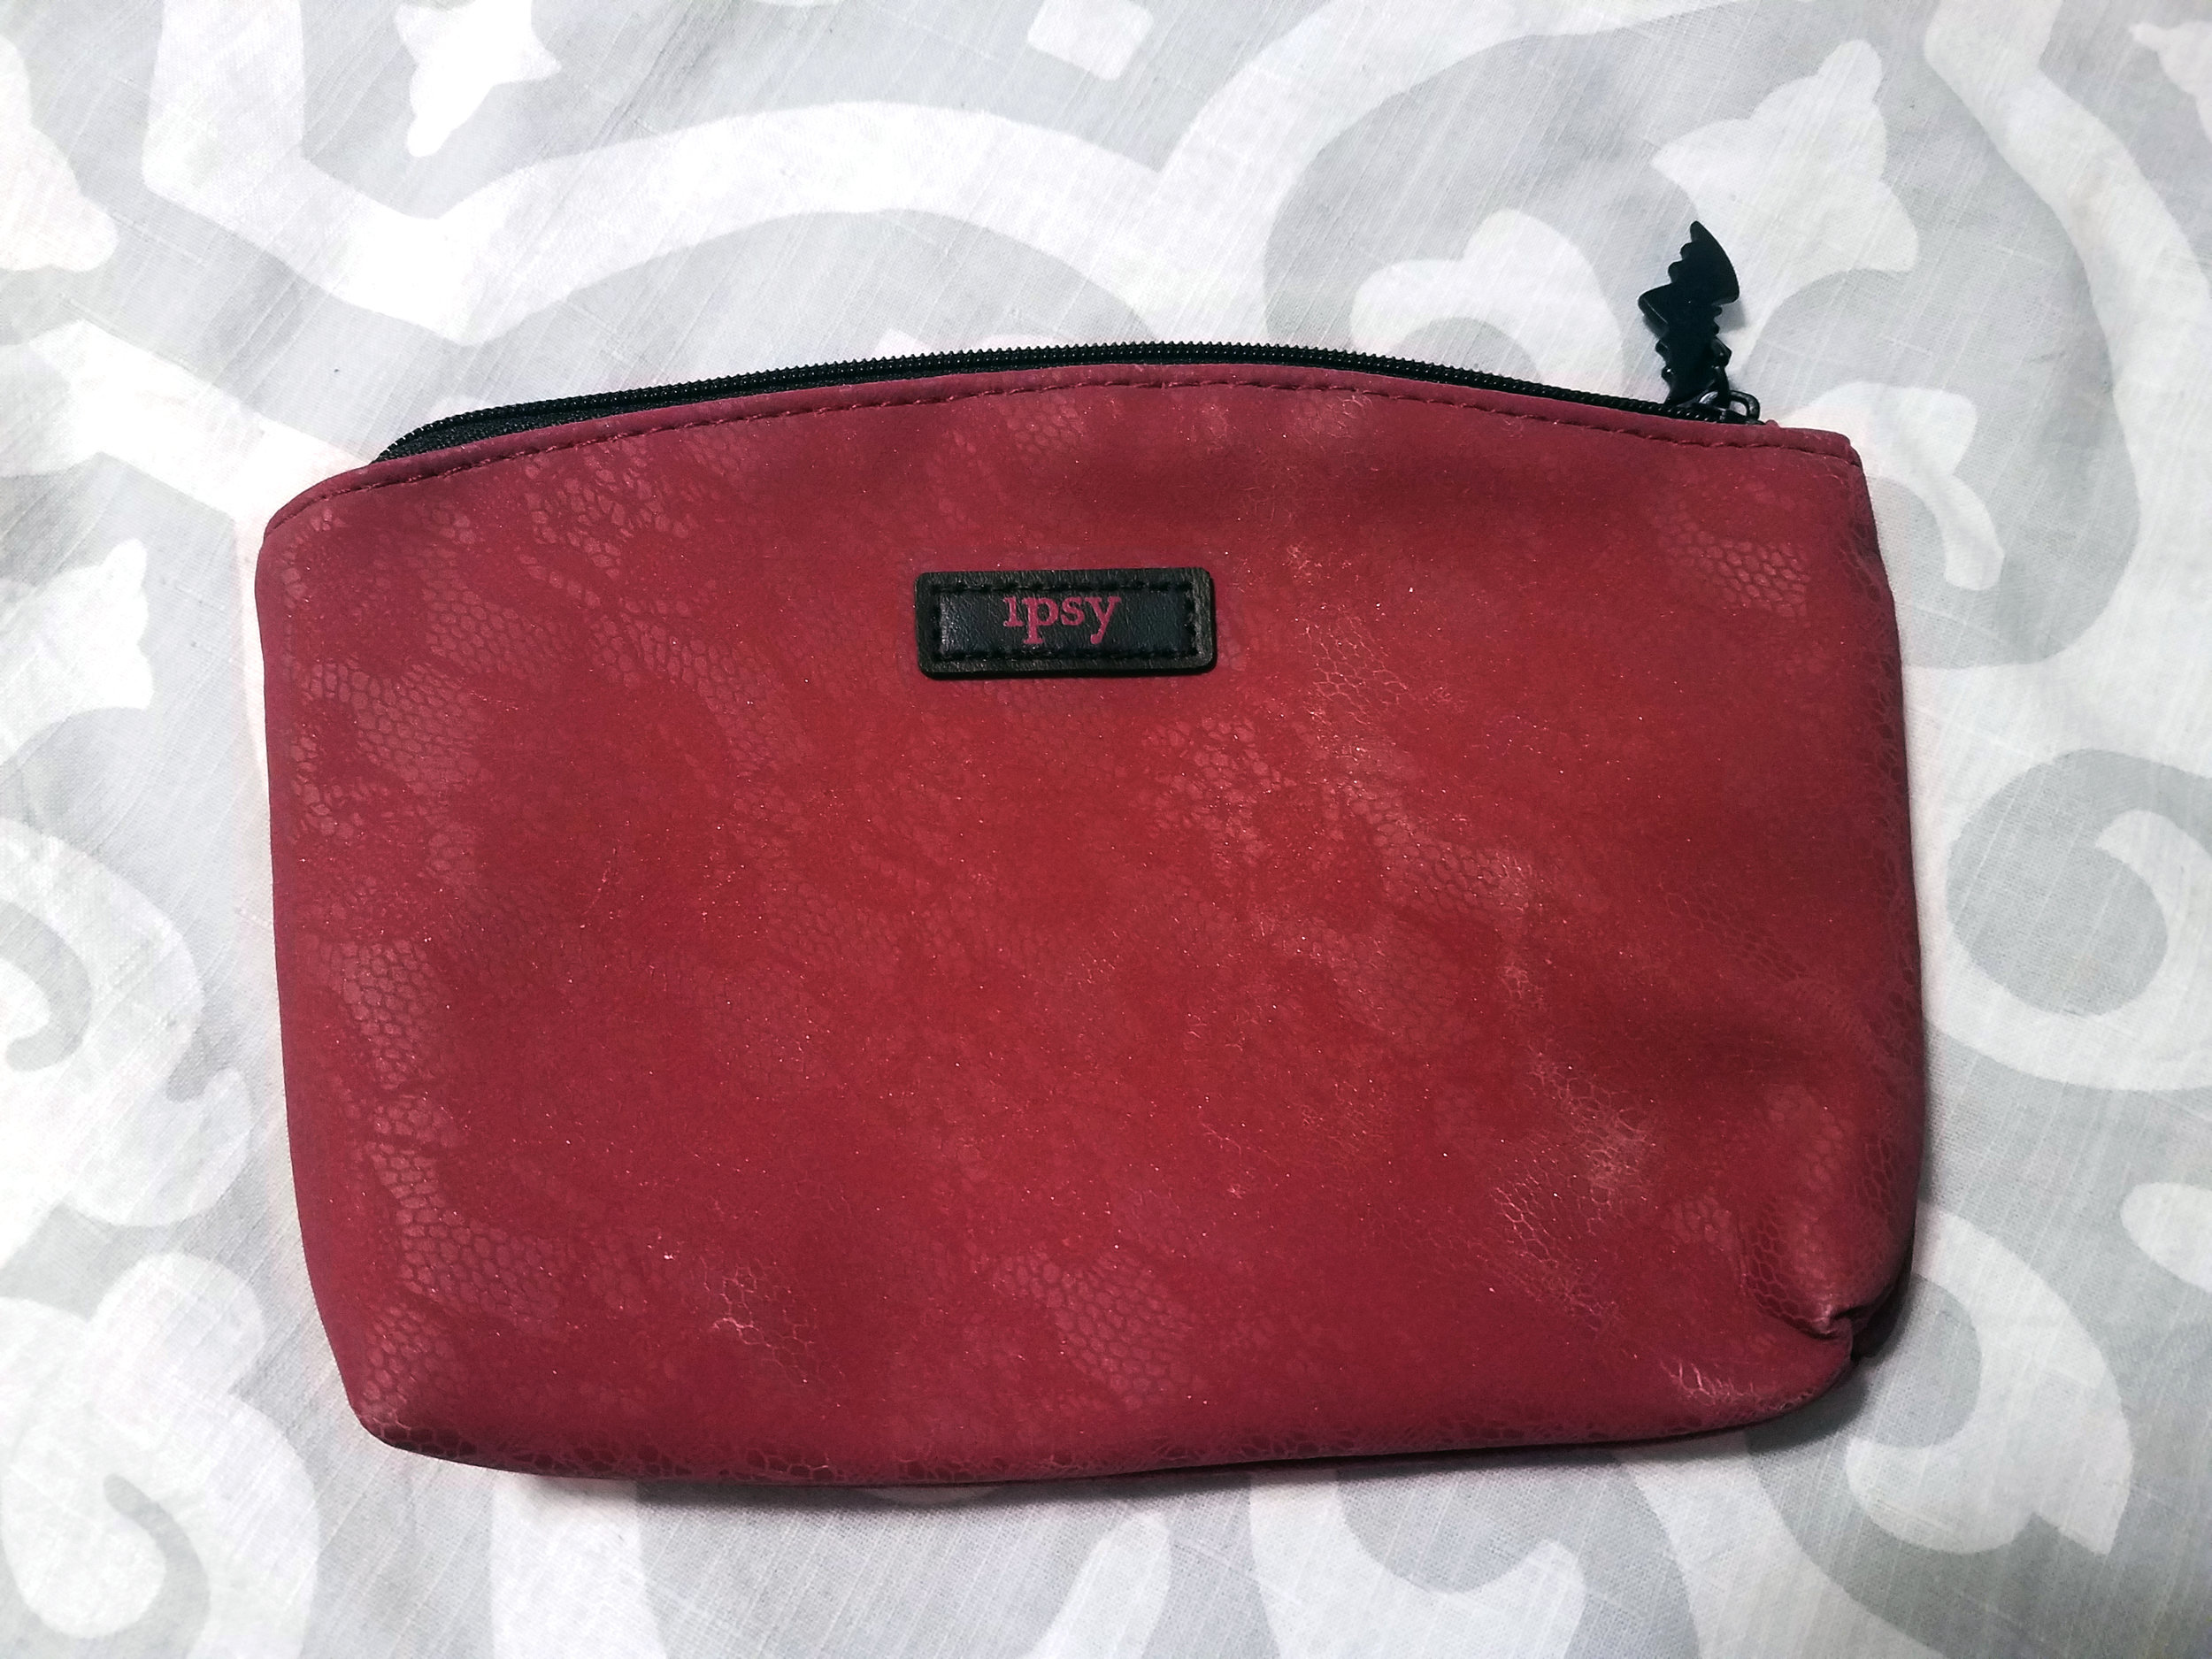 Octobers'bag is red with a lace print on top.It is made of suede and has a little bat pulltab. Reg. Retail Price - $6.25.